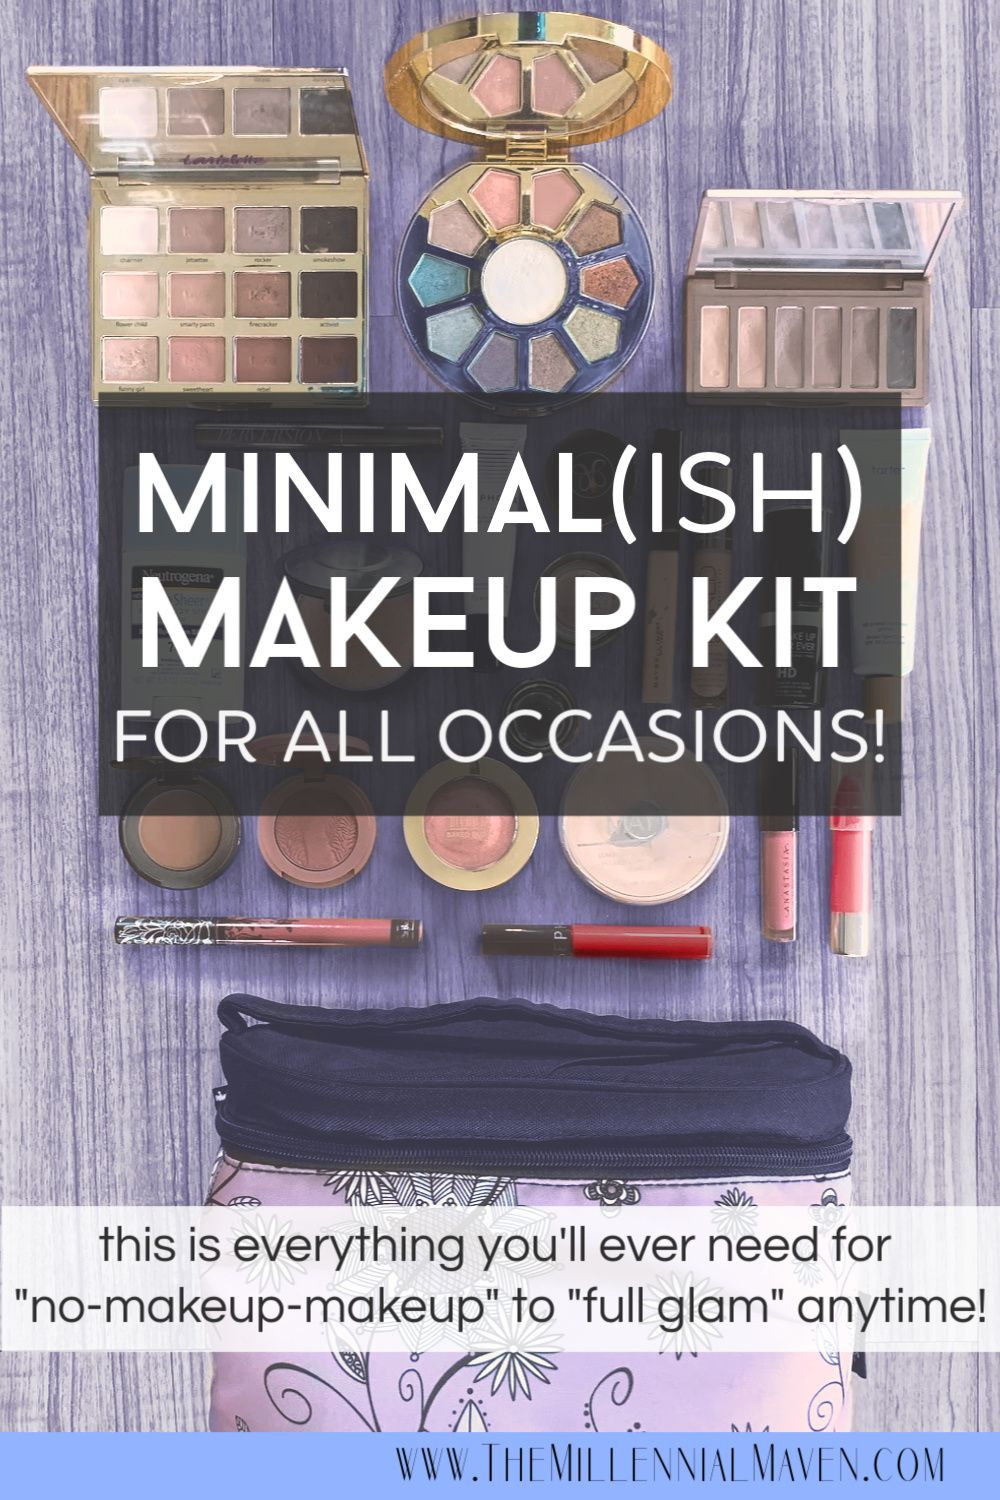 My Minimal(ish) Makeup Kit for *All Occasions* (Natural or Full Glam!) || The Millennial Maven #naturalmakeup #minimalmakeup #minimalism #beautytips #makeuptips #girlboss